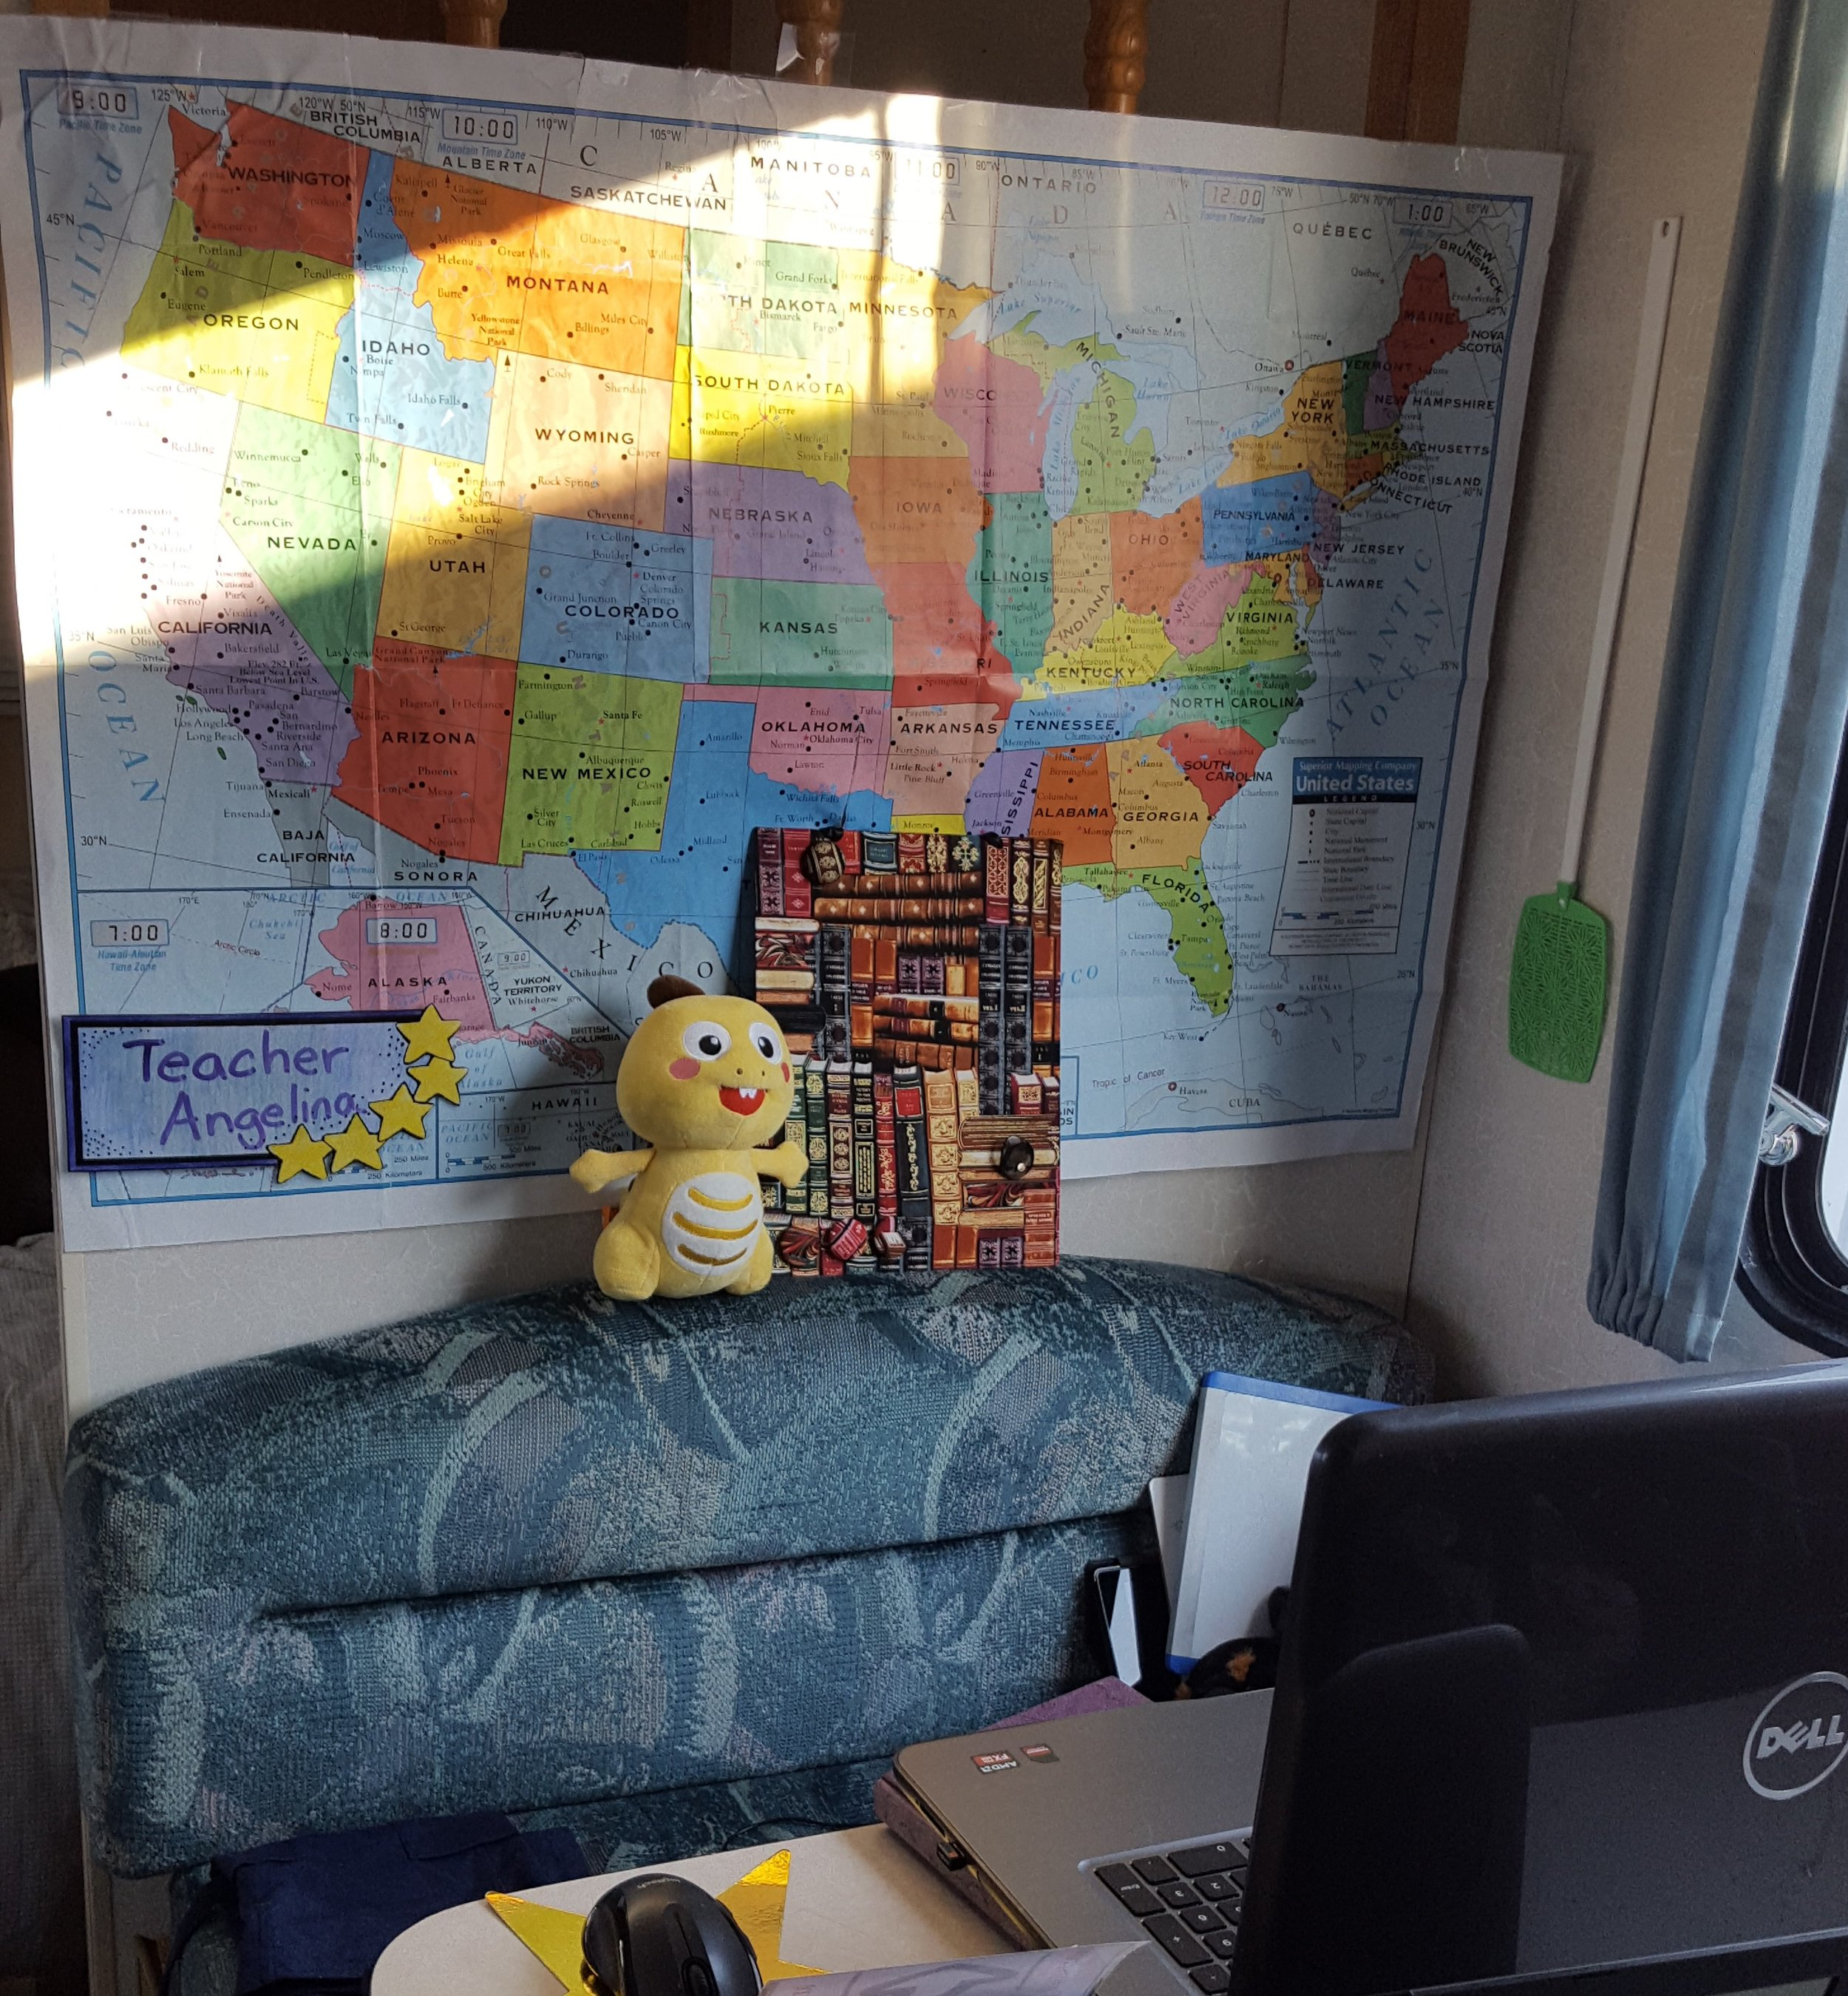 Here's my camper set-up. Note that the sunbeam and fly-swatter were not visible during class. This was where I worked for most of my 3 months of displacement.